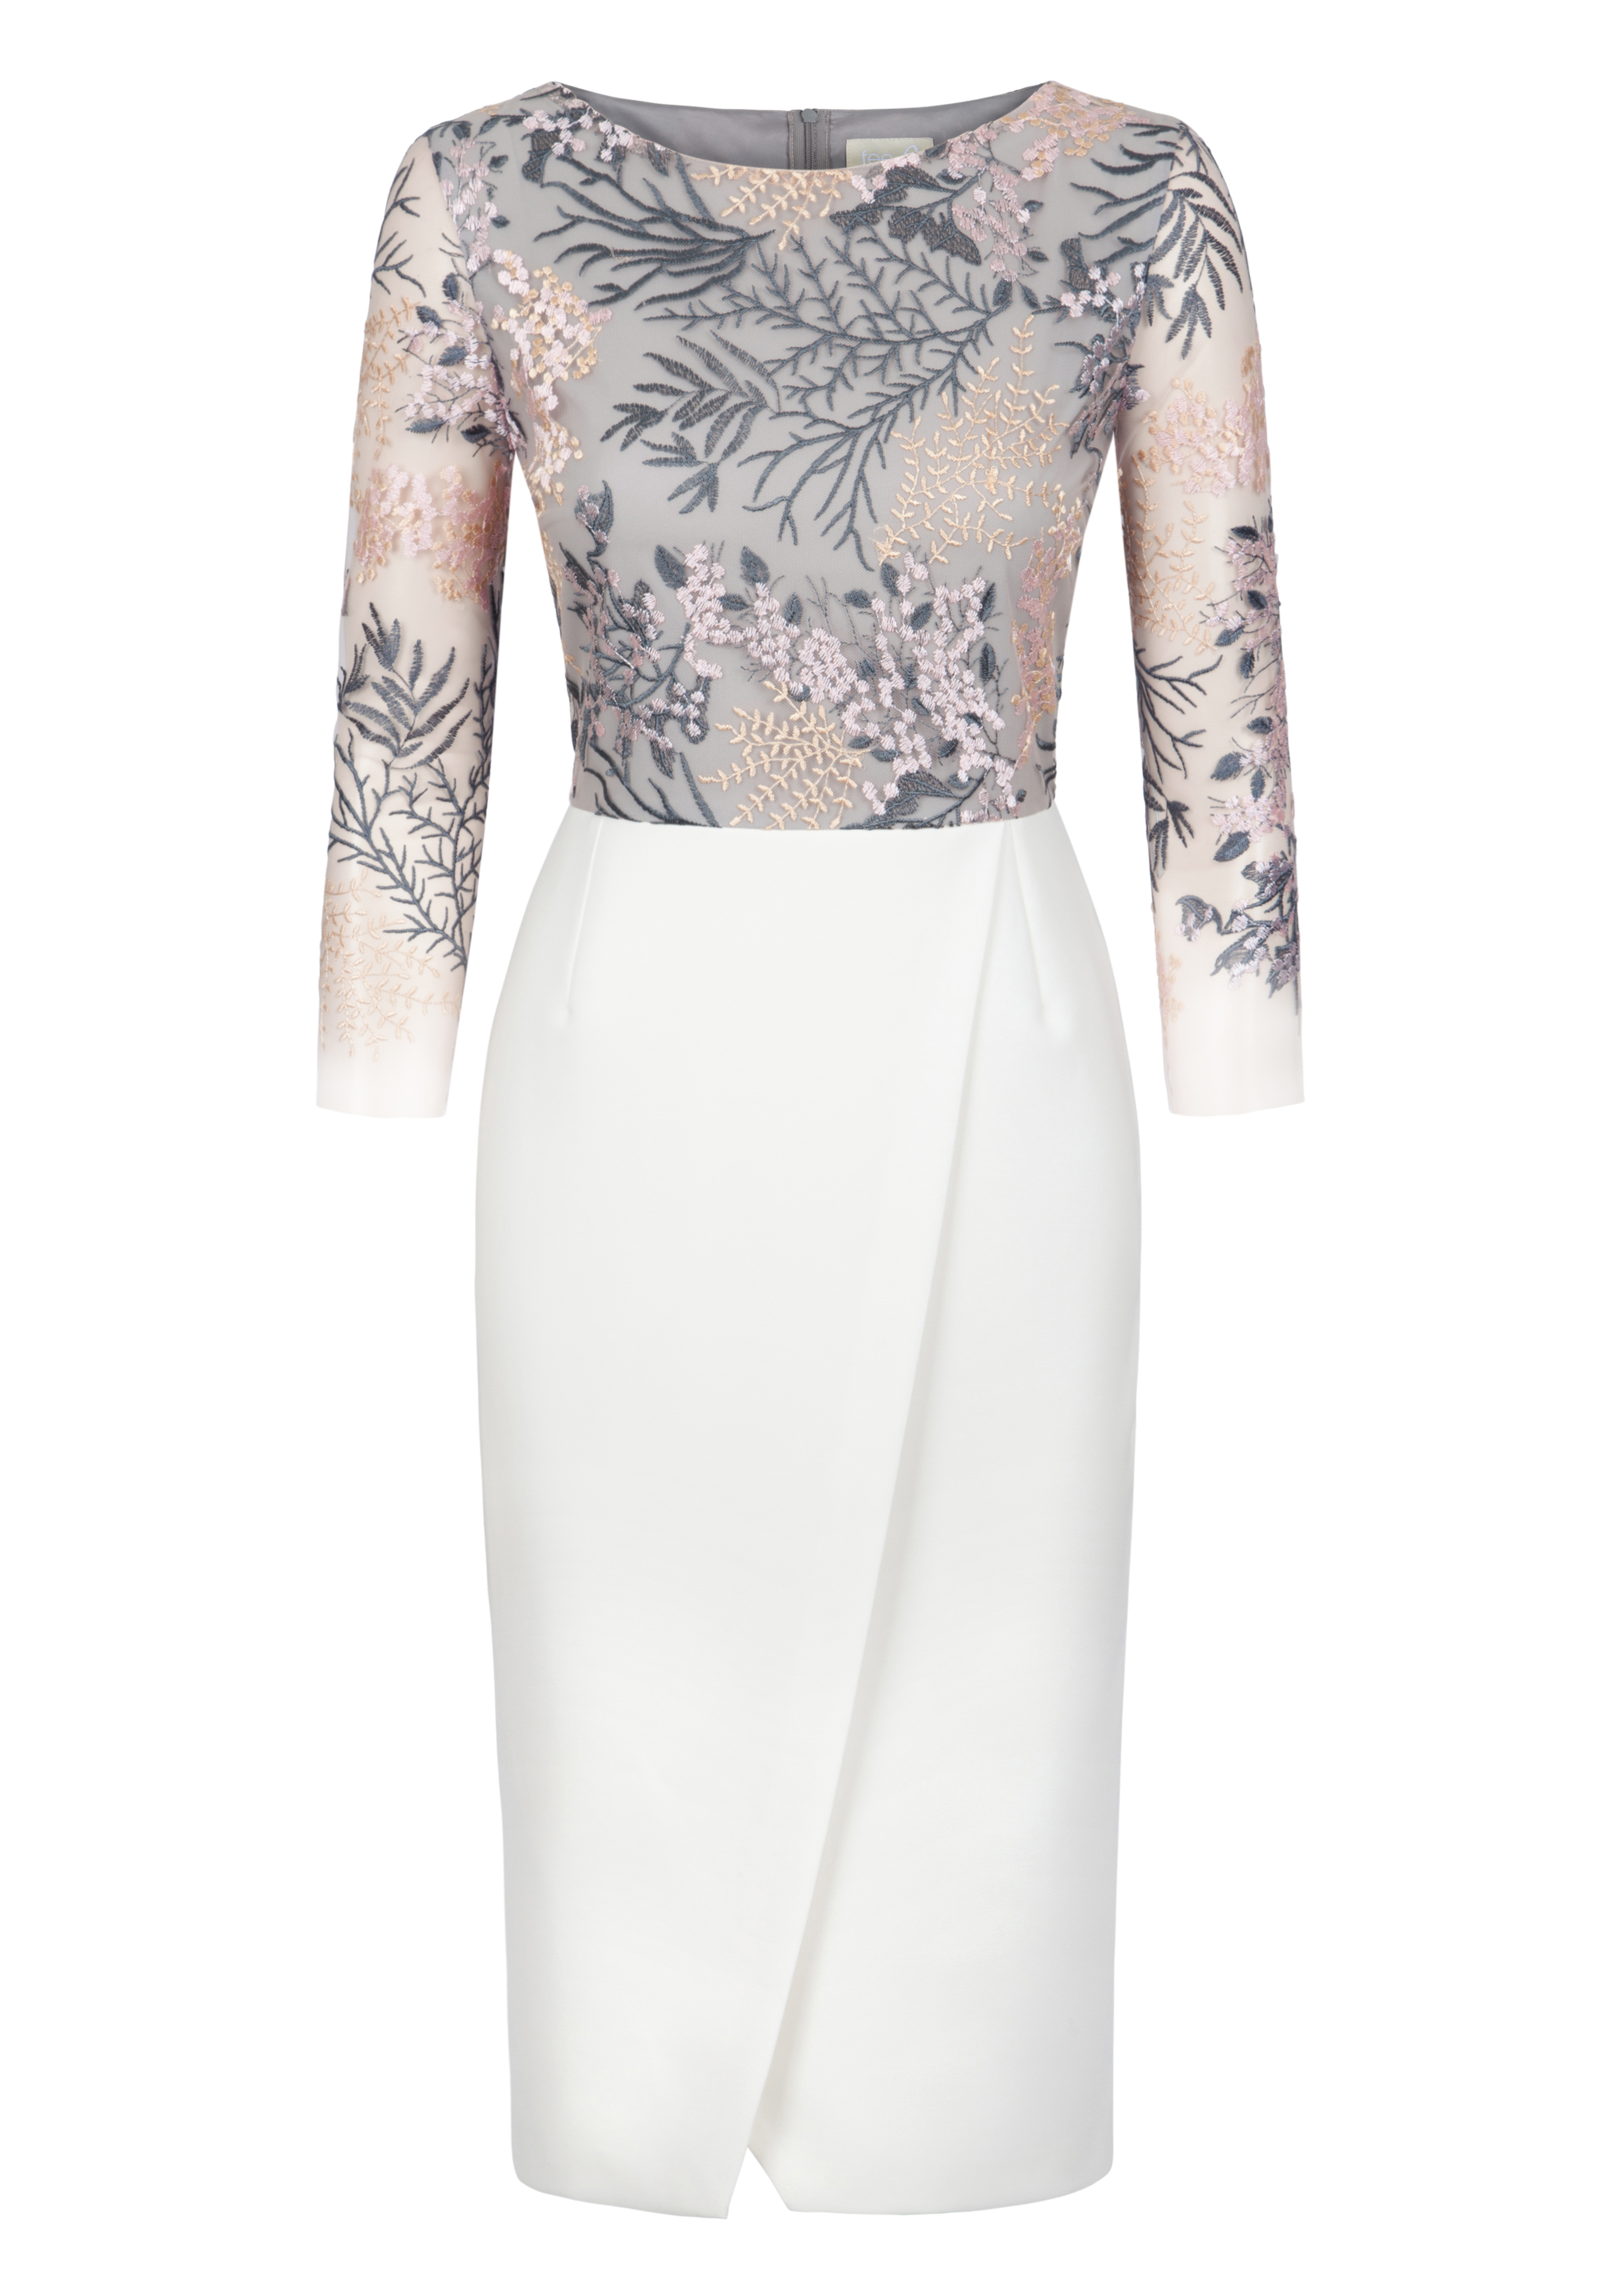 Grey and Ivory Fee G Floral Embroidered Dress